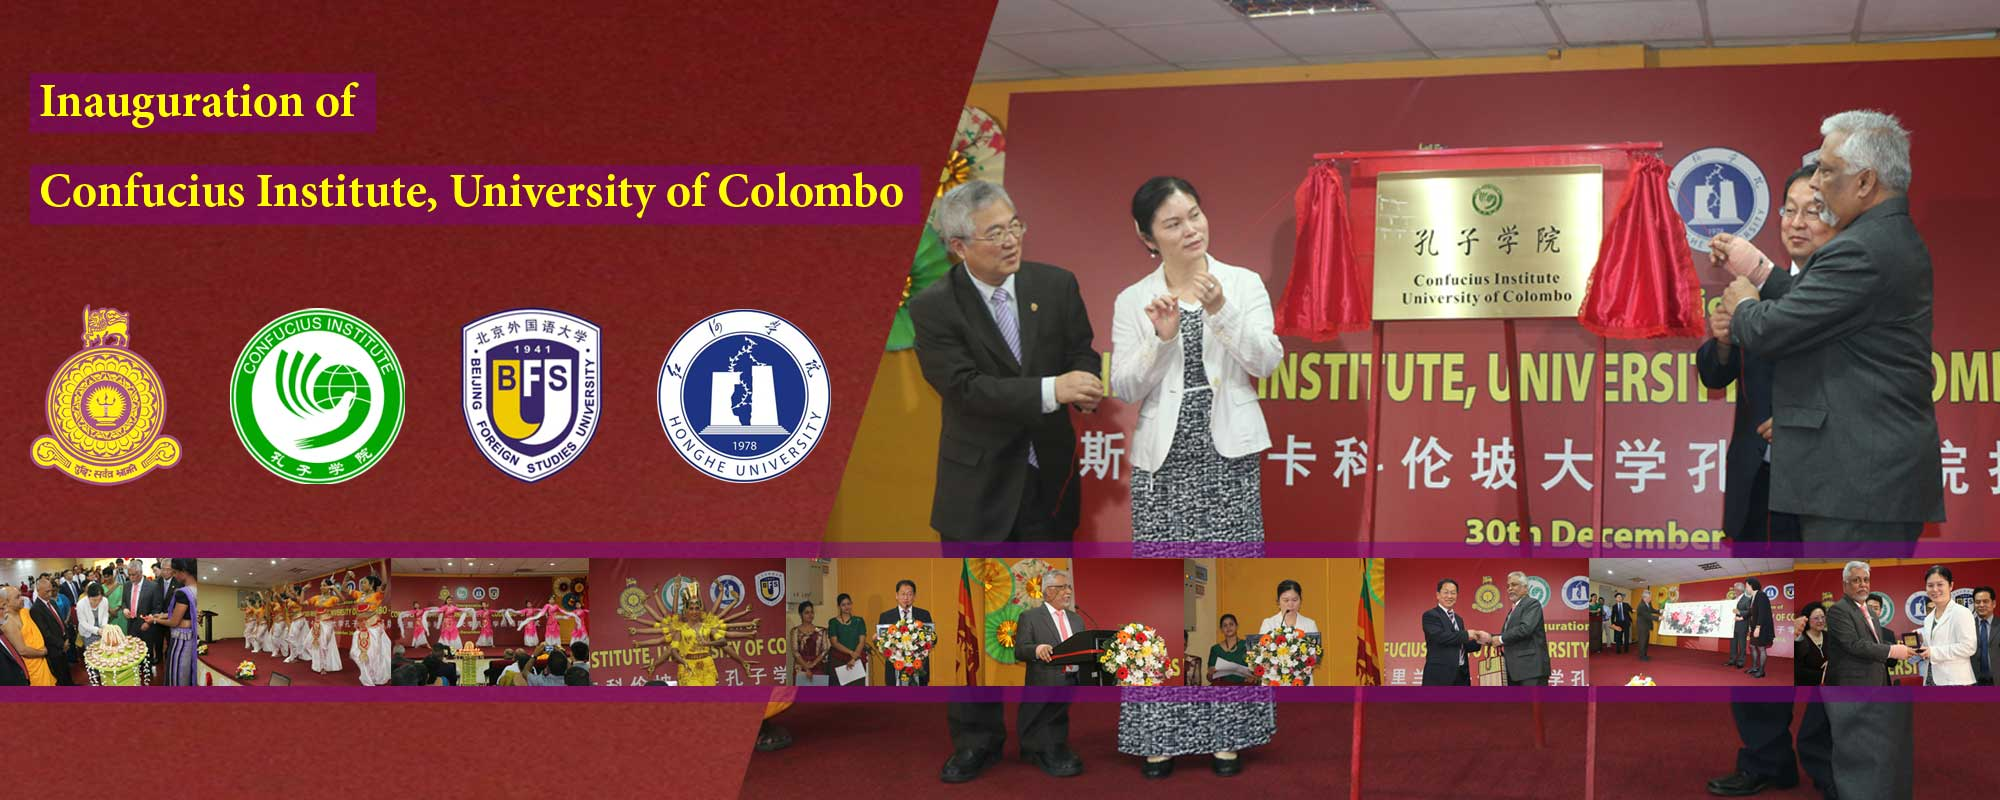 The Inauguration Ceremony of the Confucius Institute